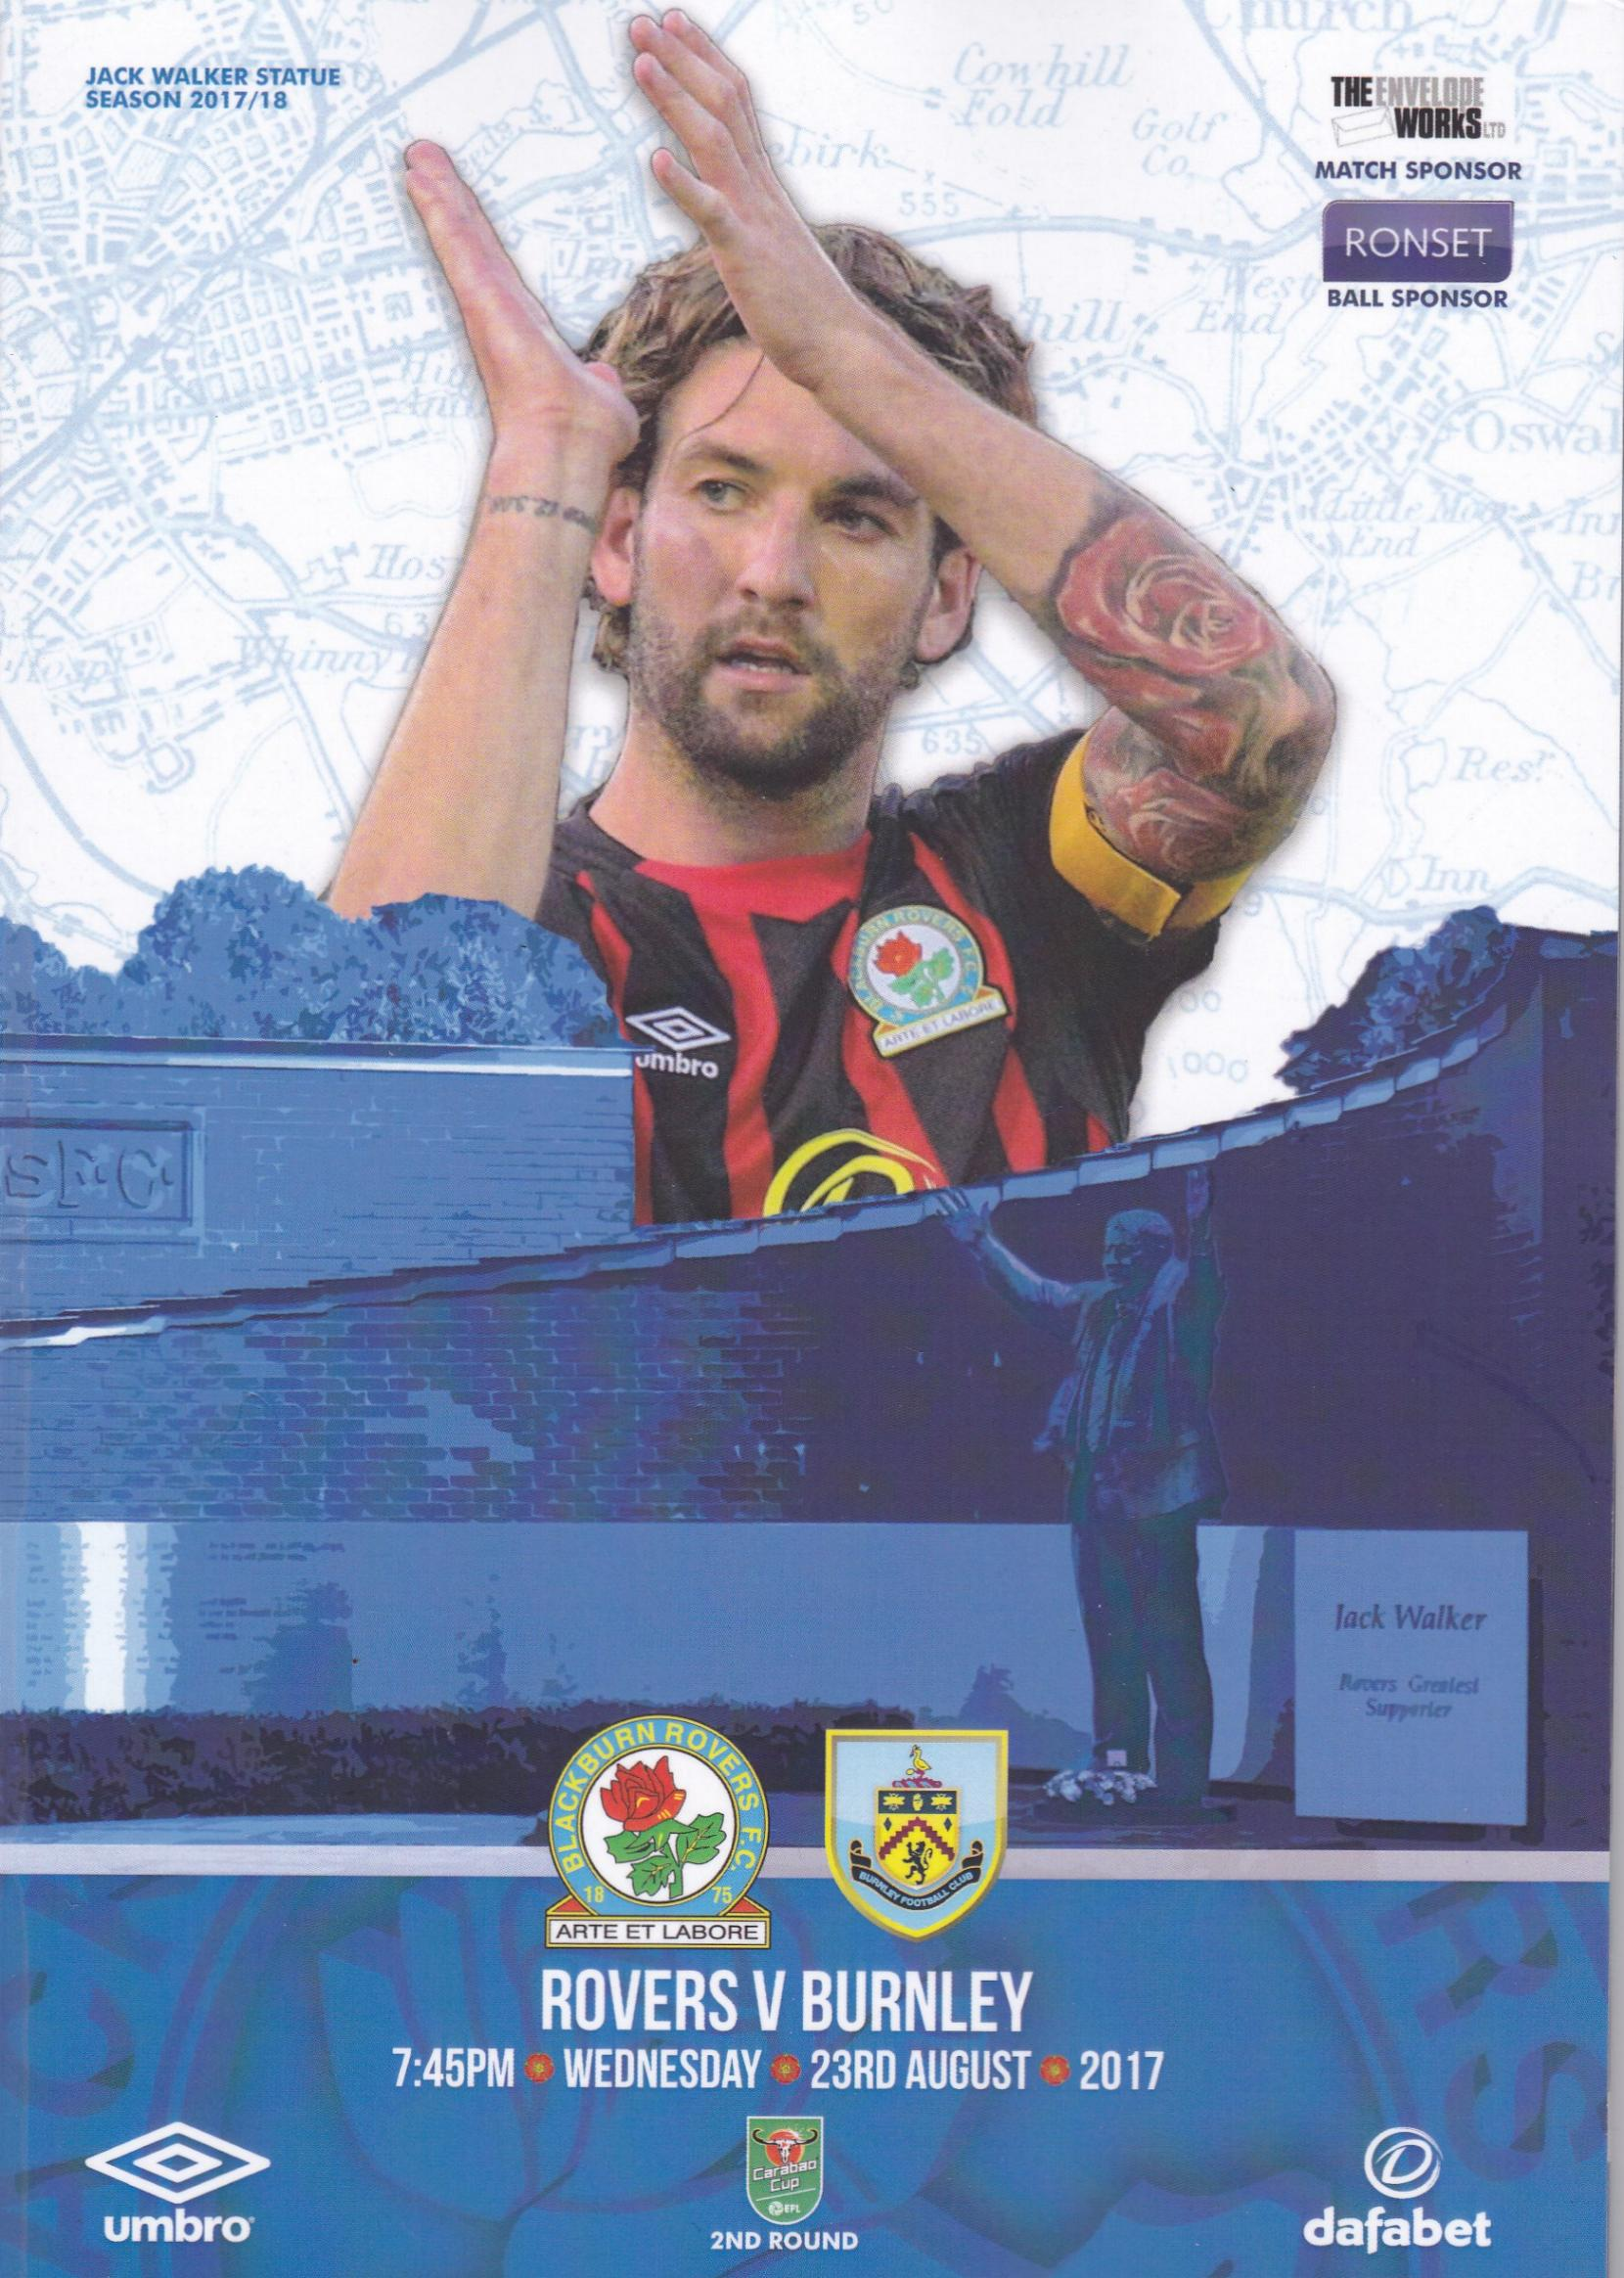 BLACKBURN ROVERS v BURNLEY (LEAGUE CUP) 2017/18